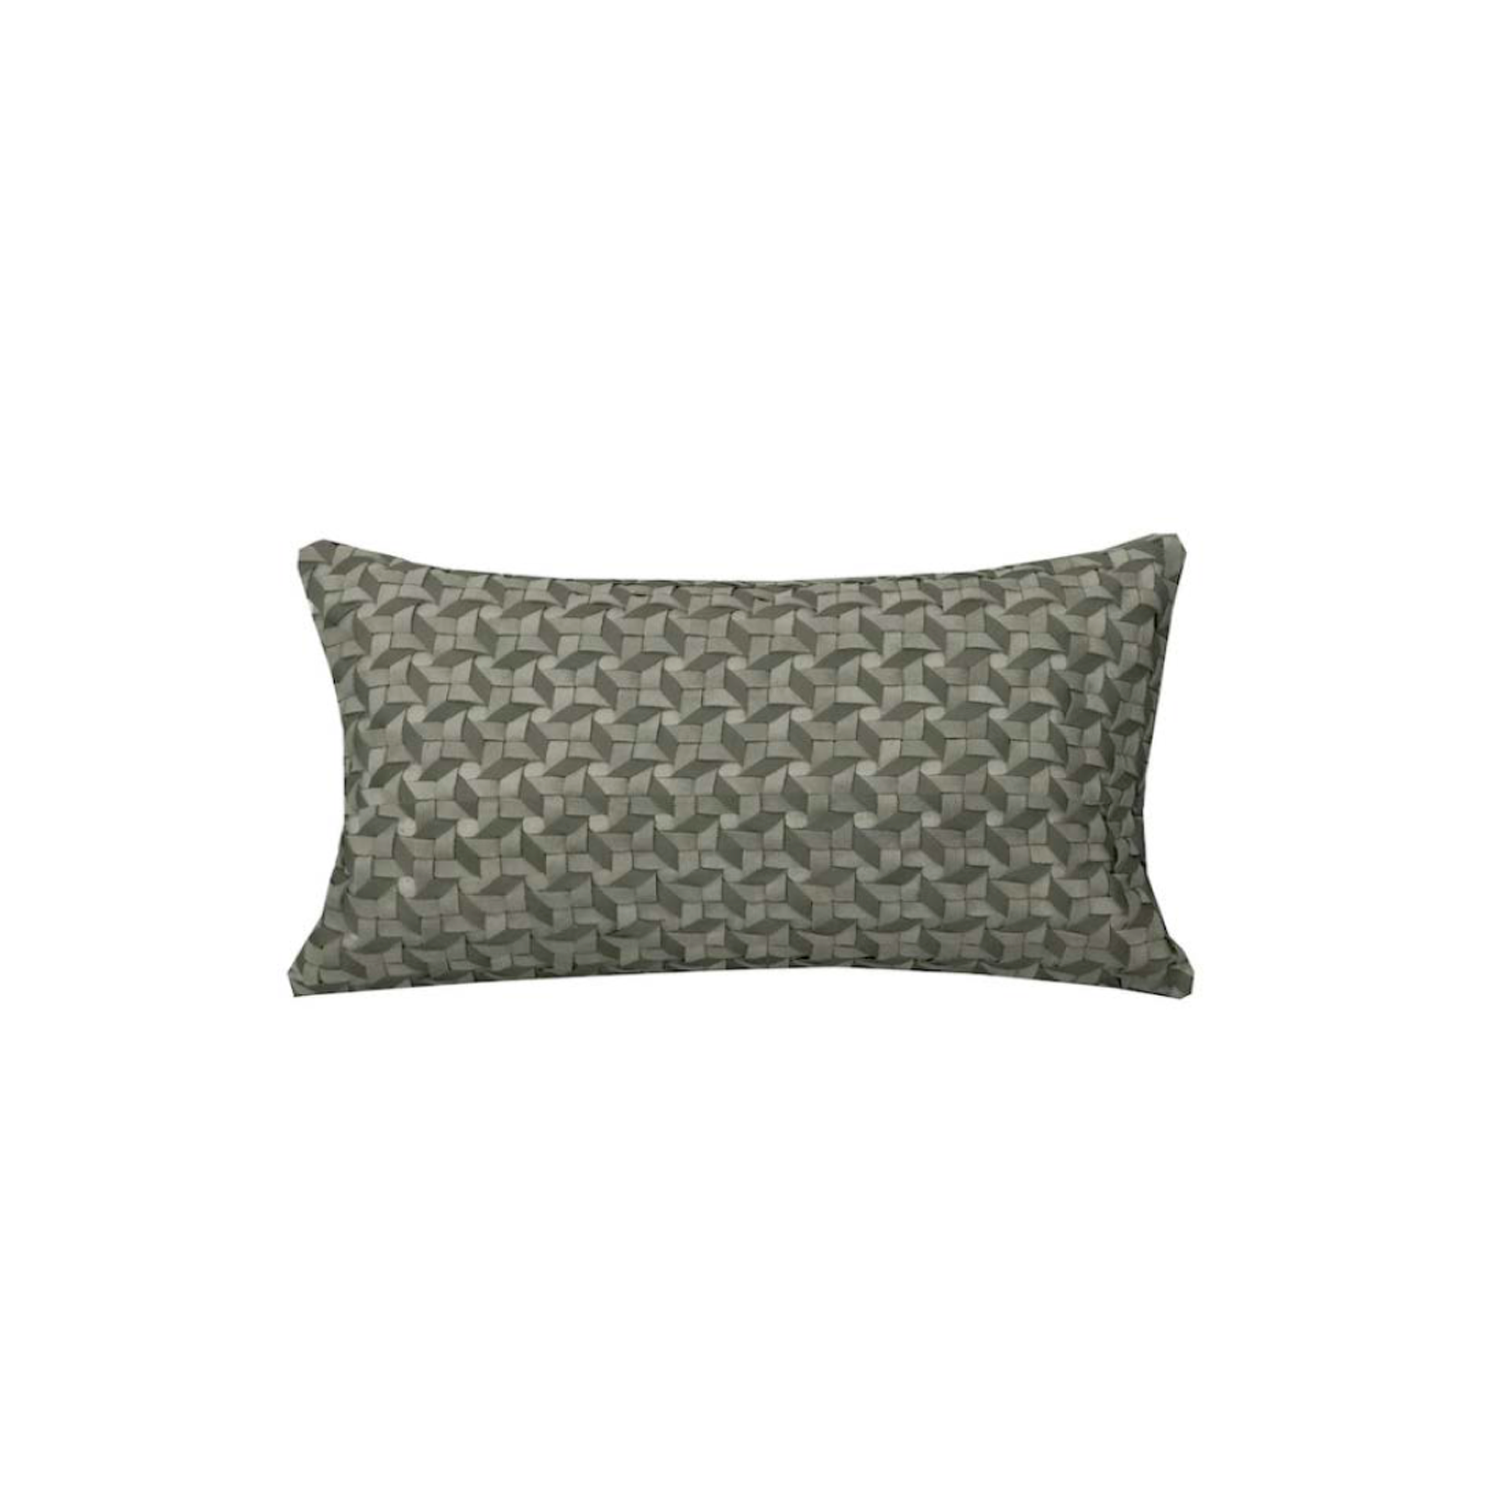 Maxi Catavento Woven Leather Cushion Small - The Maxi Catavento Woven Leather Cushion is designed to complement an ambient with a natural and sophisticated feeling. This cushion style is available in pleated leather or pleated suede leather. Elisa Atheniense woven handmade leather cushions are specially manufactured in Brazil using an exclusive treated leather that brings the soft feel touch to every single piece.   The front panel is handwoven in leather and the back panel is 100% Pes, made in Brazil.  The inner cushion is available in Hollow Fibre and European Duck Feathers, made in the UK.  Please enquire for more information and see colour chart for reference.   | Matter of Stuff